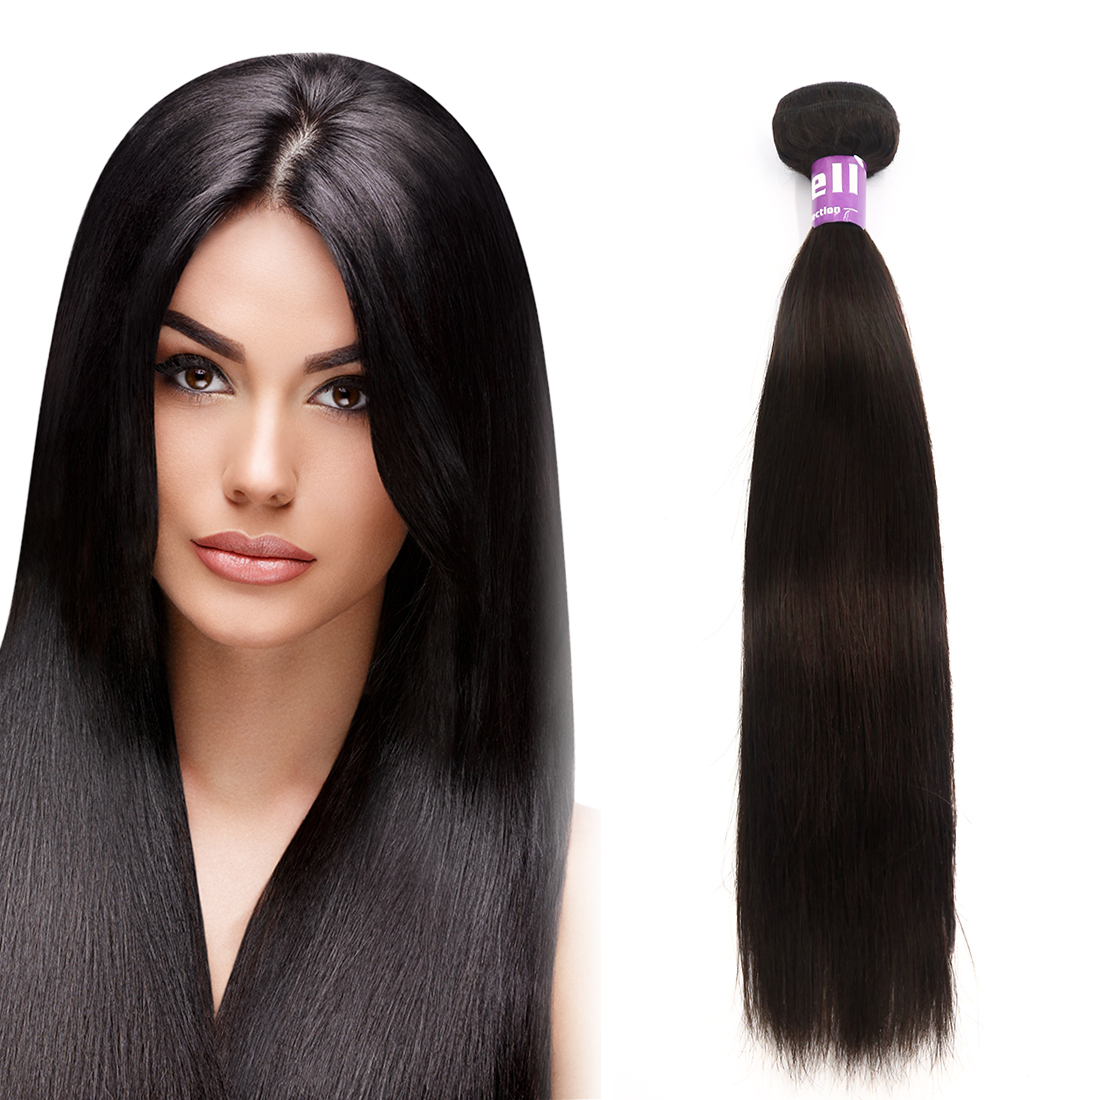 "Peruvian Virgin Silky Straight Human Hair Weave Extensions 7A 24"" 1 Bundle"